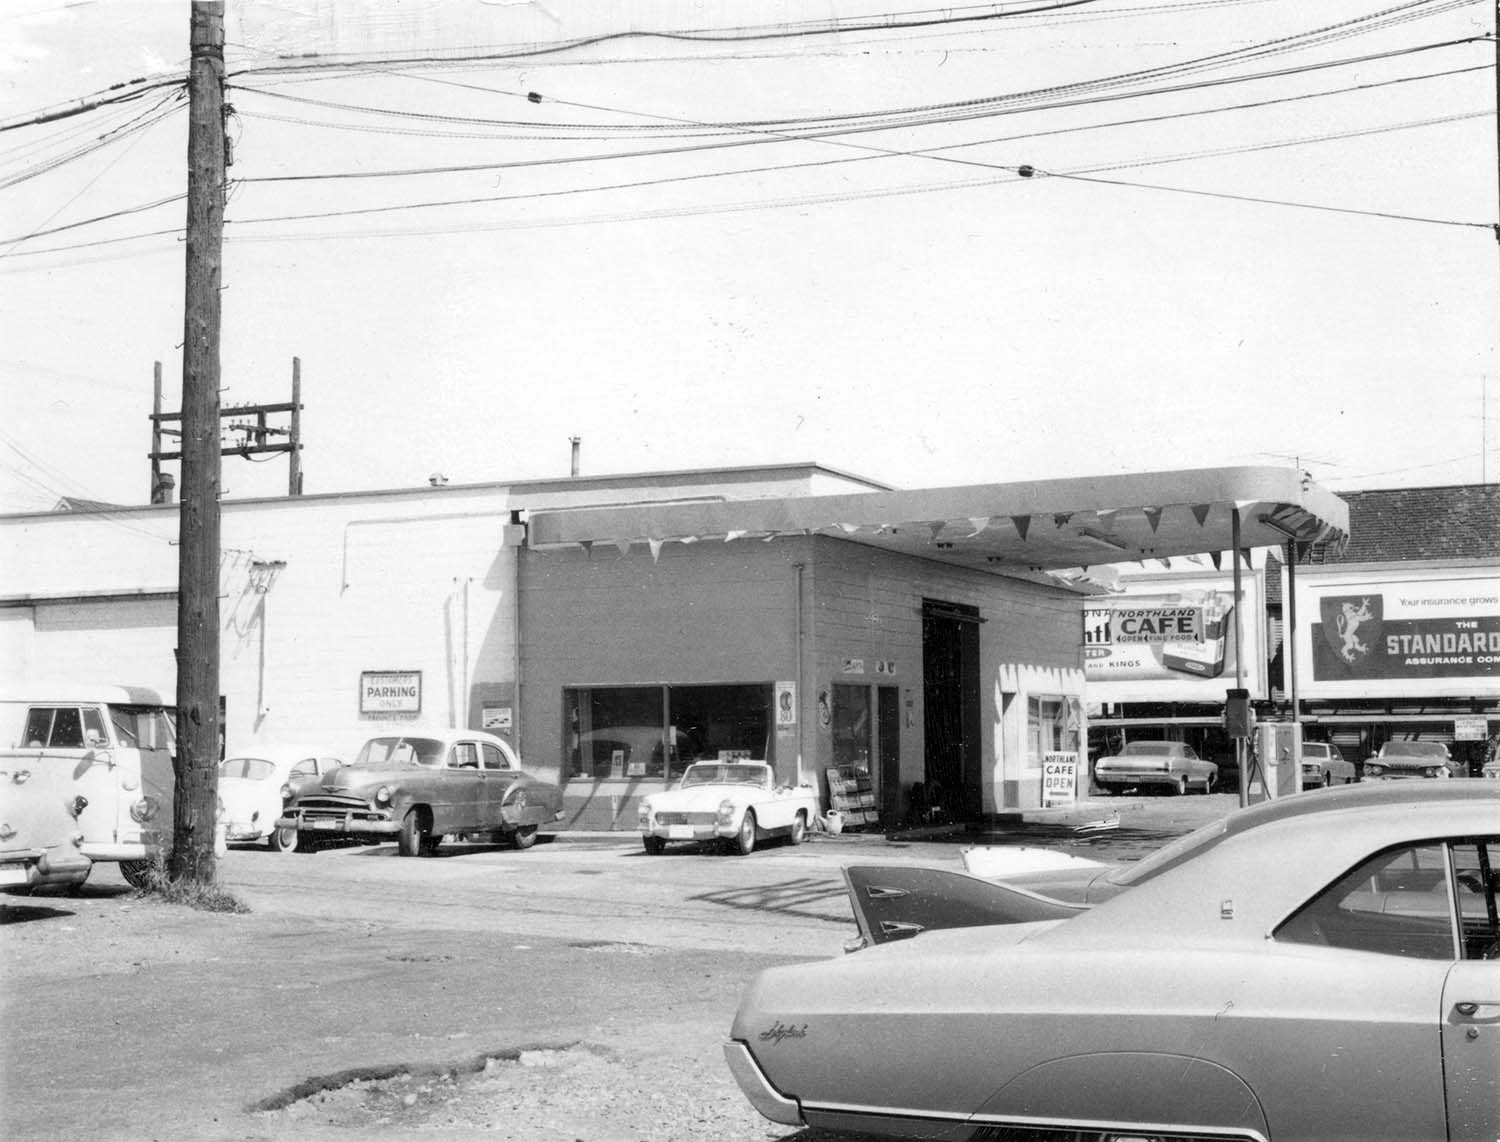 219 and 221 Prior Street, 1969. Photograph shows the Iberica Garage and the Northland Cafe. Reference code COV-S168-: CVA 203-59